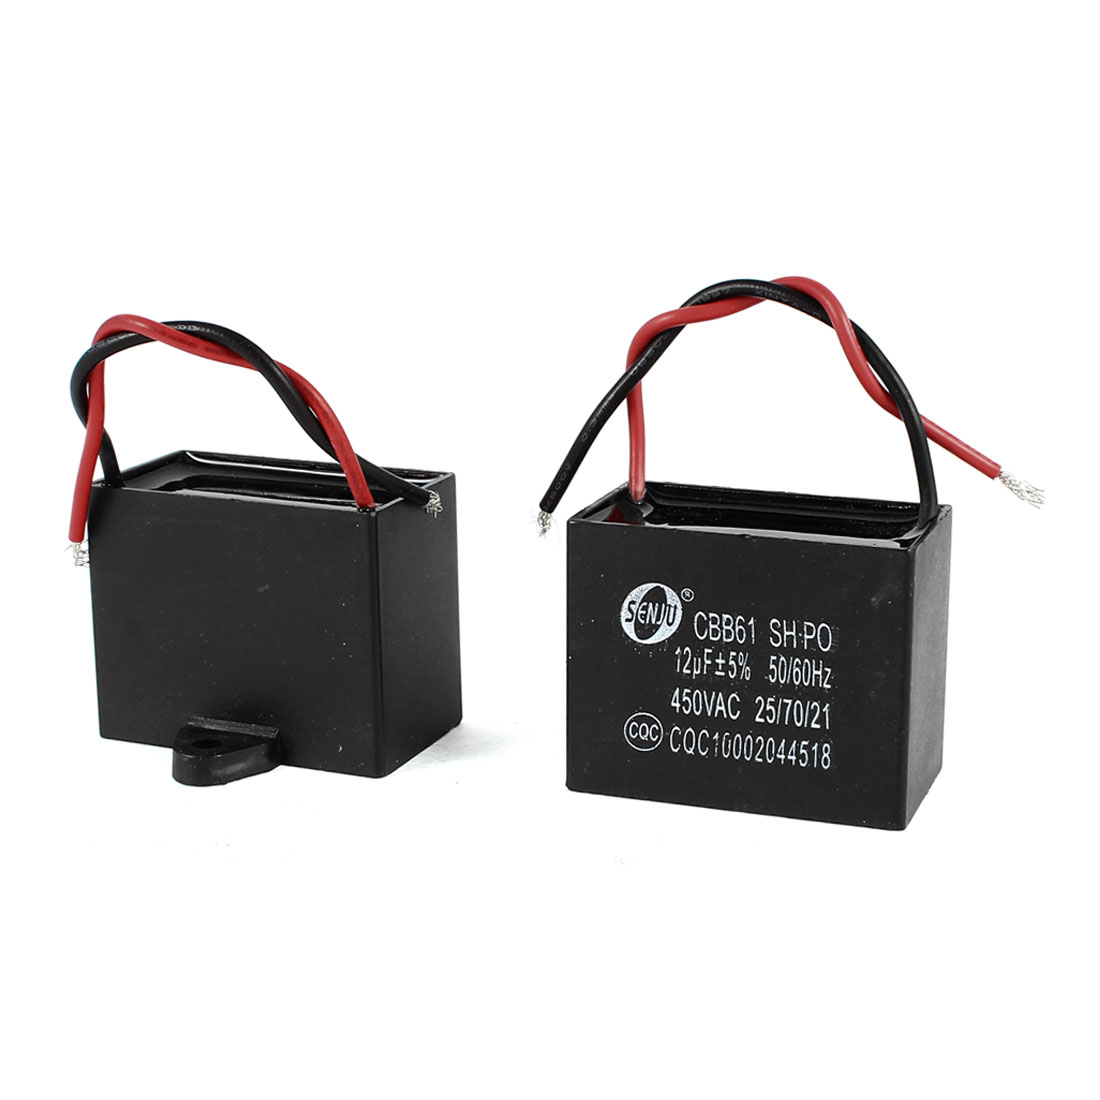 AC 450V 12uF 9cm Wired Metalized Polypropylene Film Motor Run Capacitor 2 Pieces